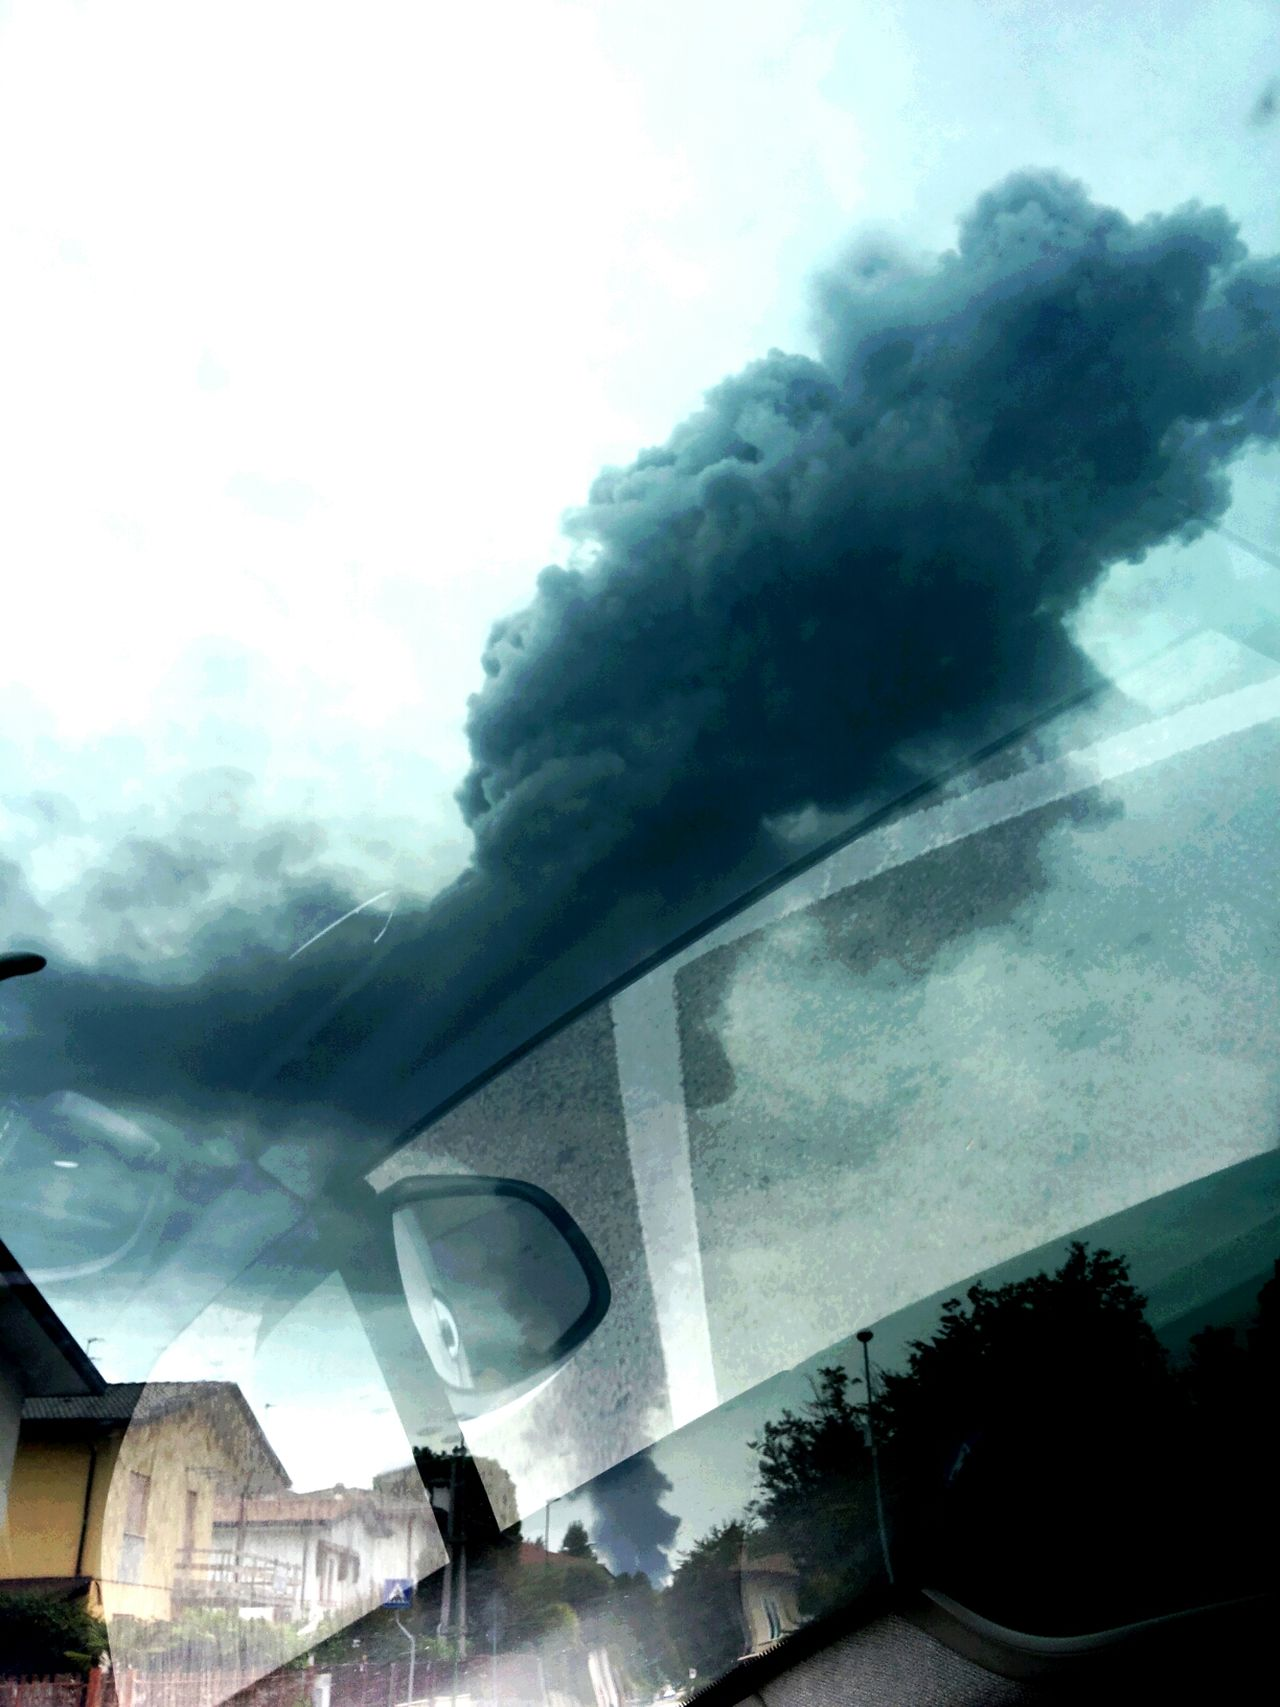 Photographic Memory Fire In My Town Driving Back Home In My Car Dark Sky Just Smoke And Not Clouds